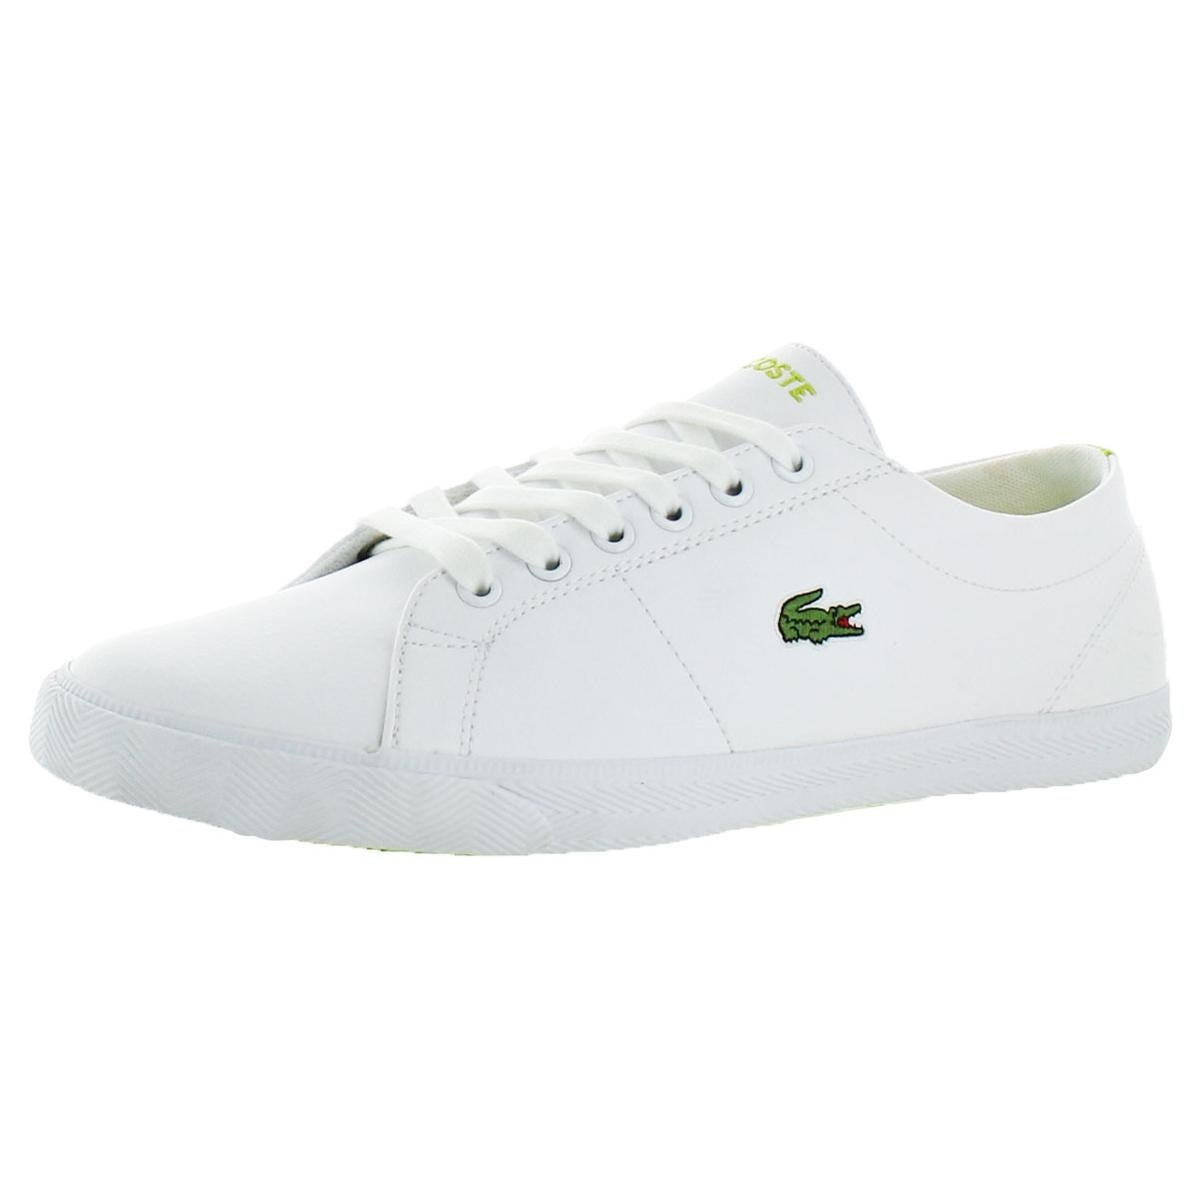 50b1cc6d909c Shop Lacoste Boys Marcel Fashion Sneakers Low Top Otholite - Free Shipping  On Orders Over  45 - Overstock - 22890855